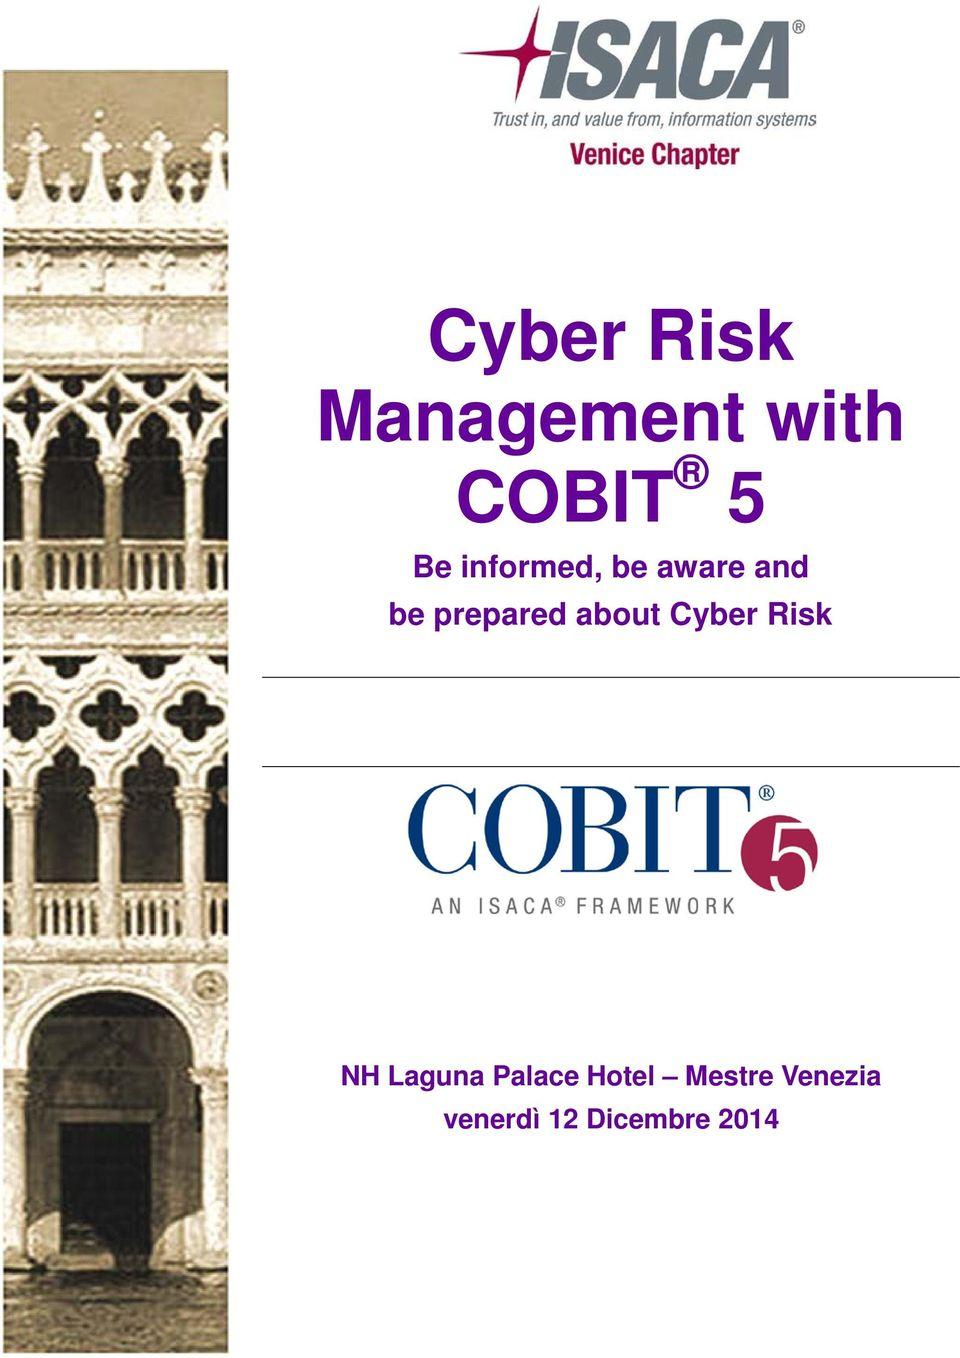 about Cyber Risk NH Laguna Palace